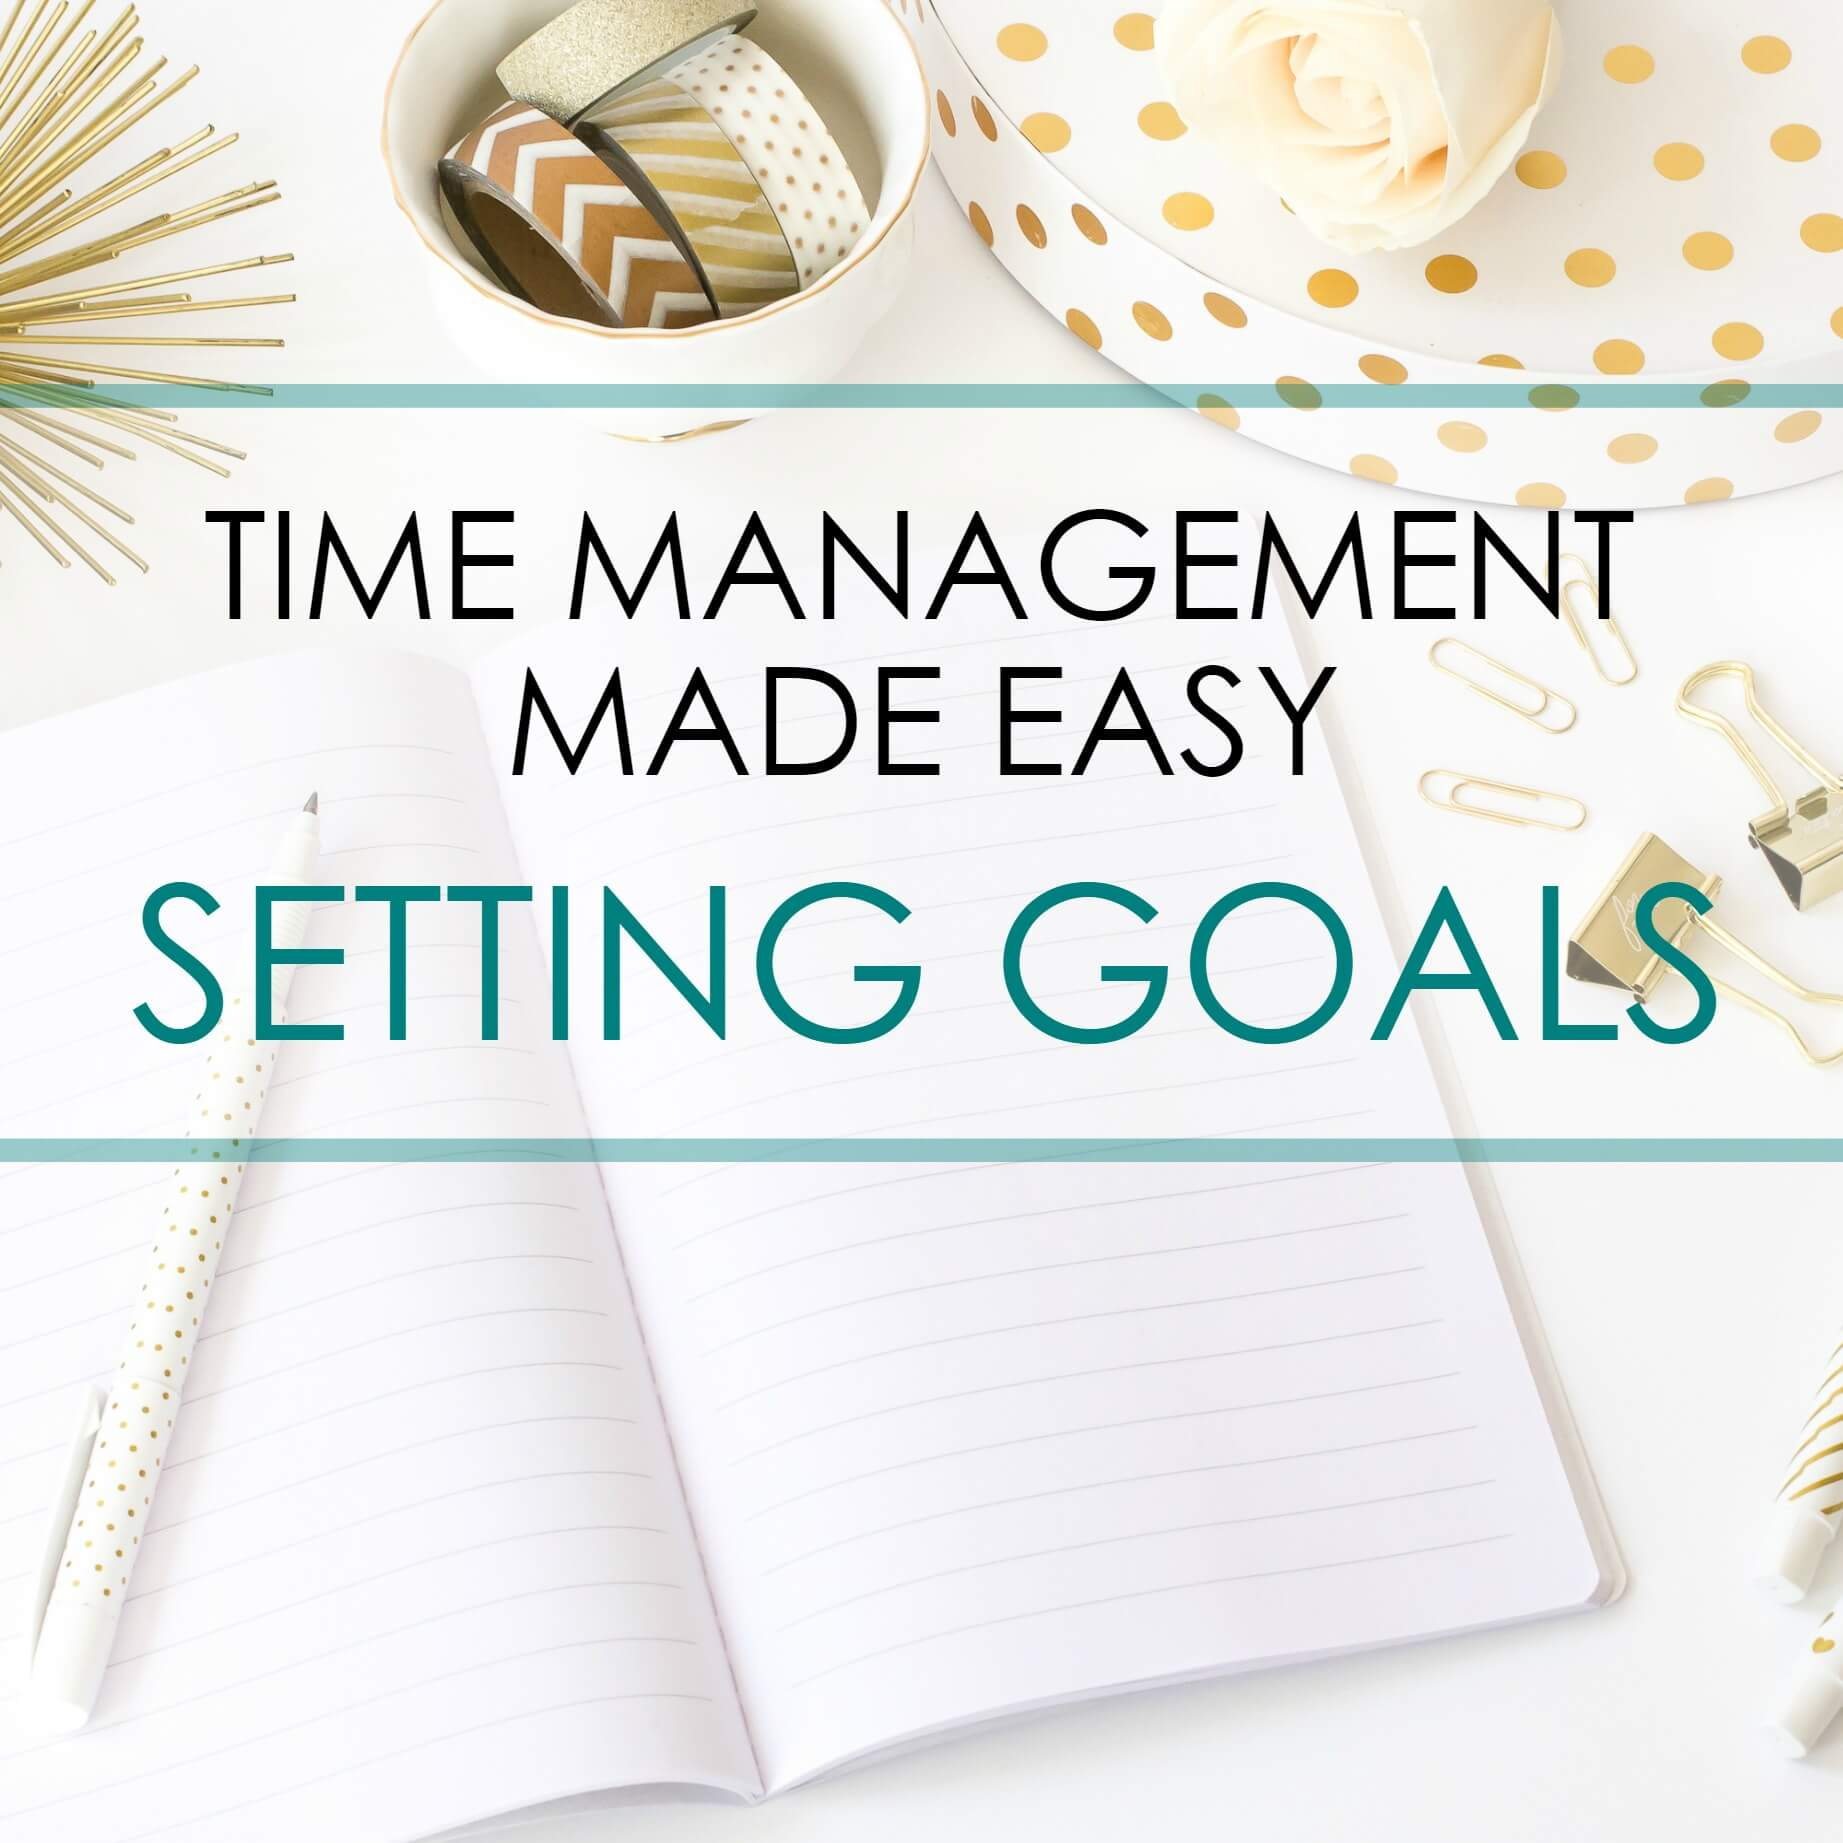 Time management made easy - setting goals